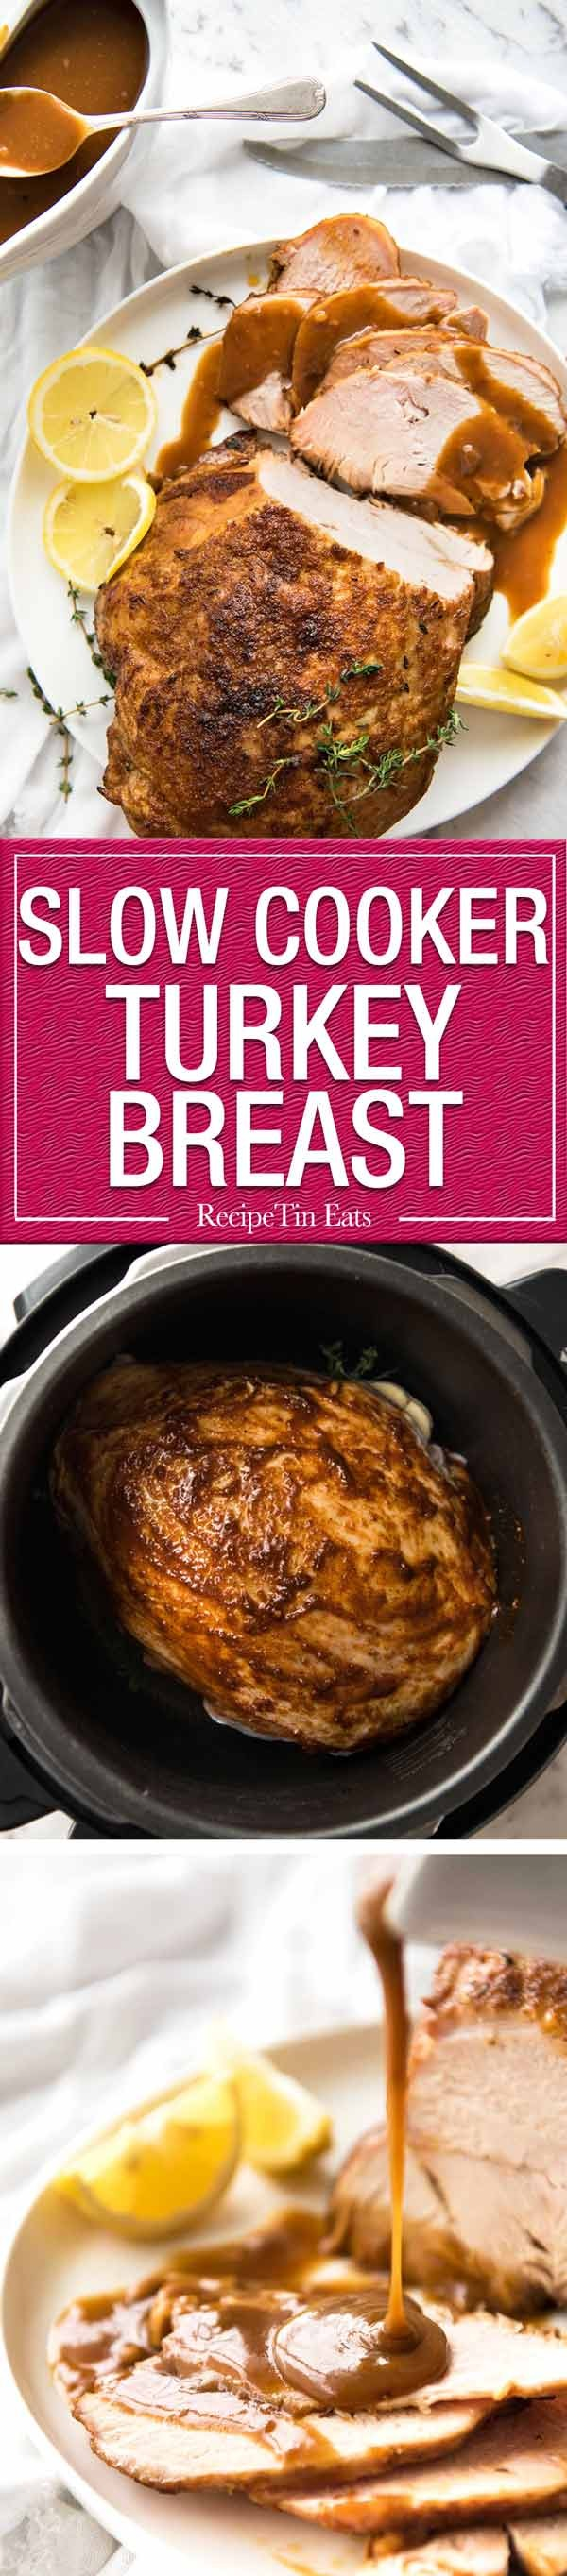 Get the recipe Slow Cooker Turkey Breast @recipes_to_go